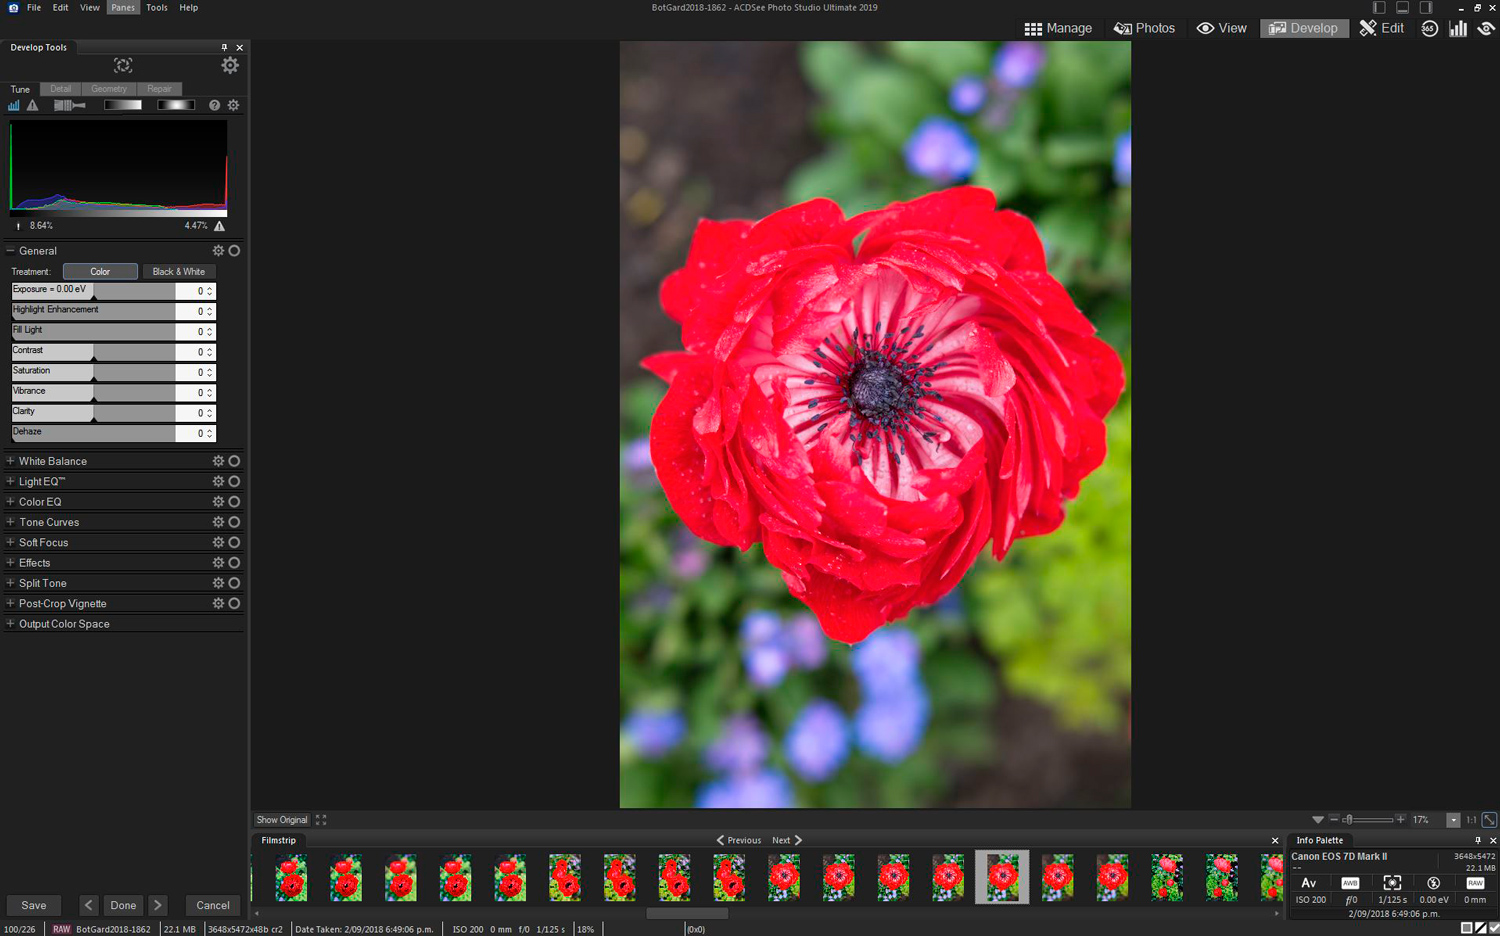 12 - ACDSee Photo Studio Ultimate 2019 Review